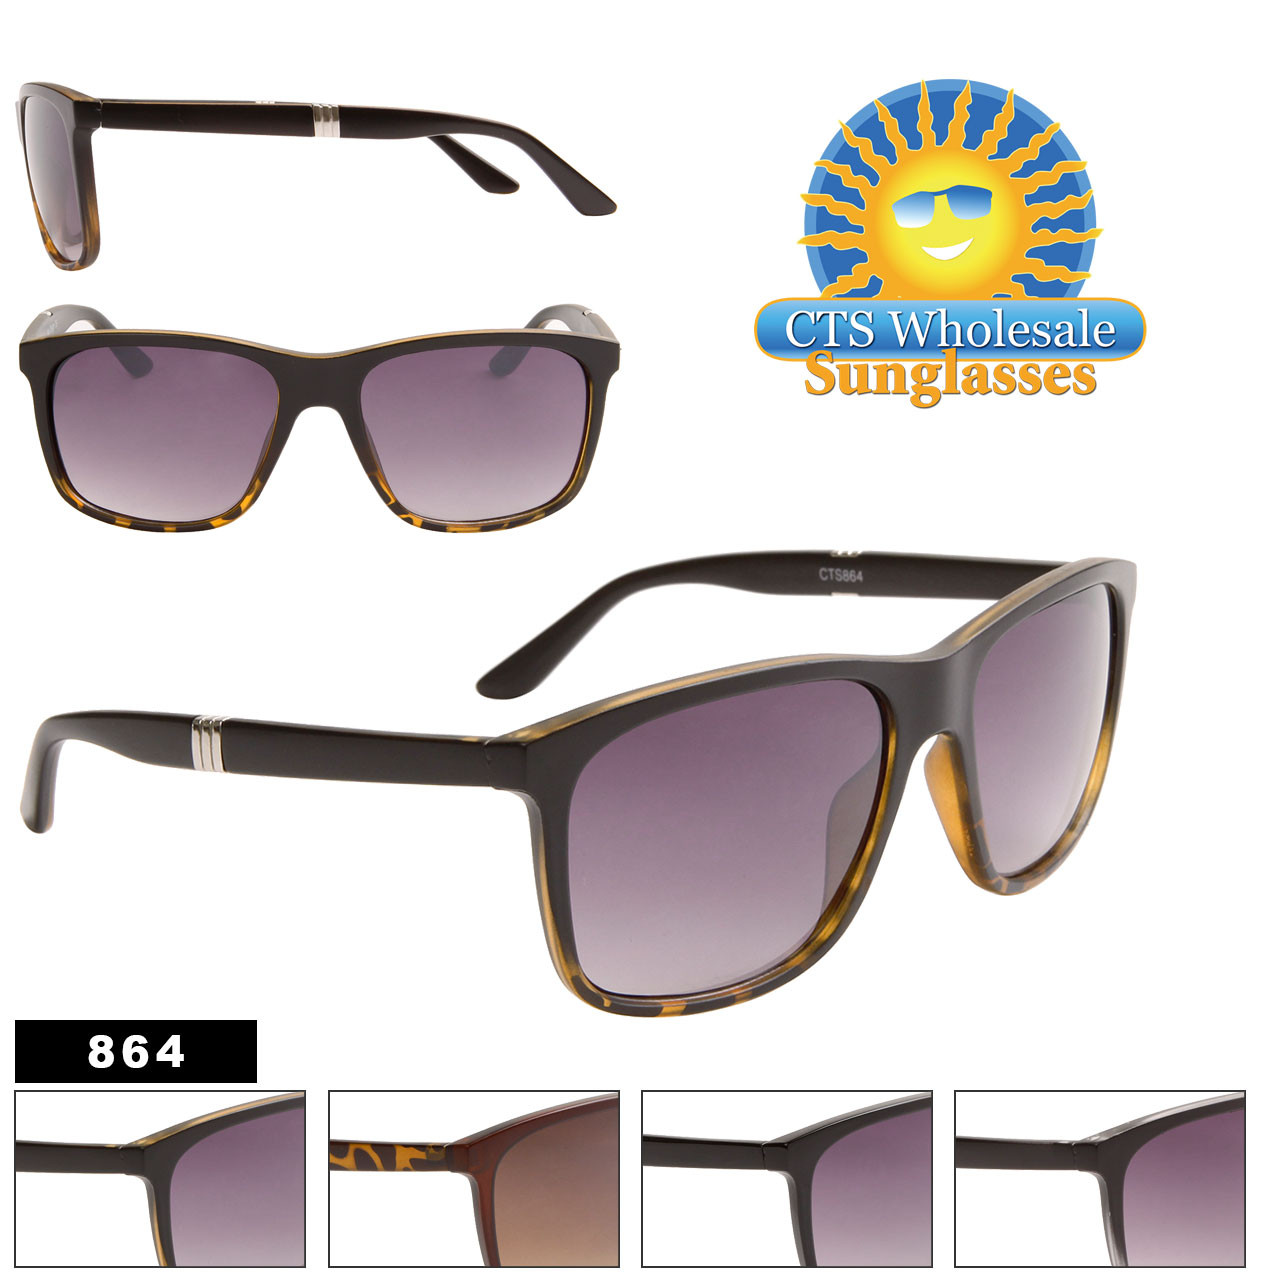 Men's Wholesale Sunglasses - Style #864